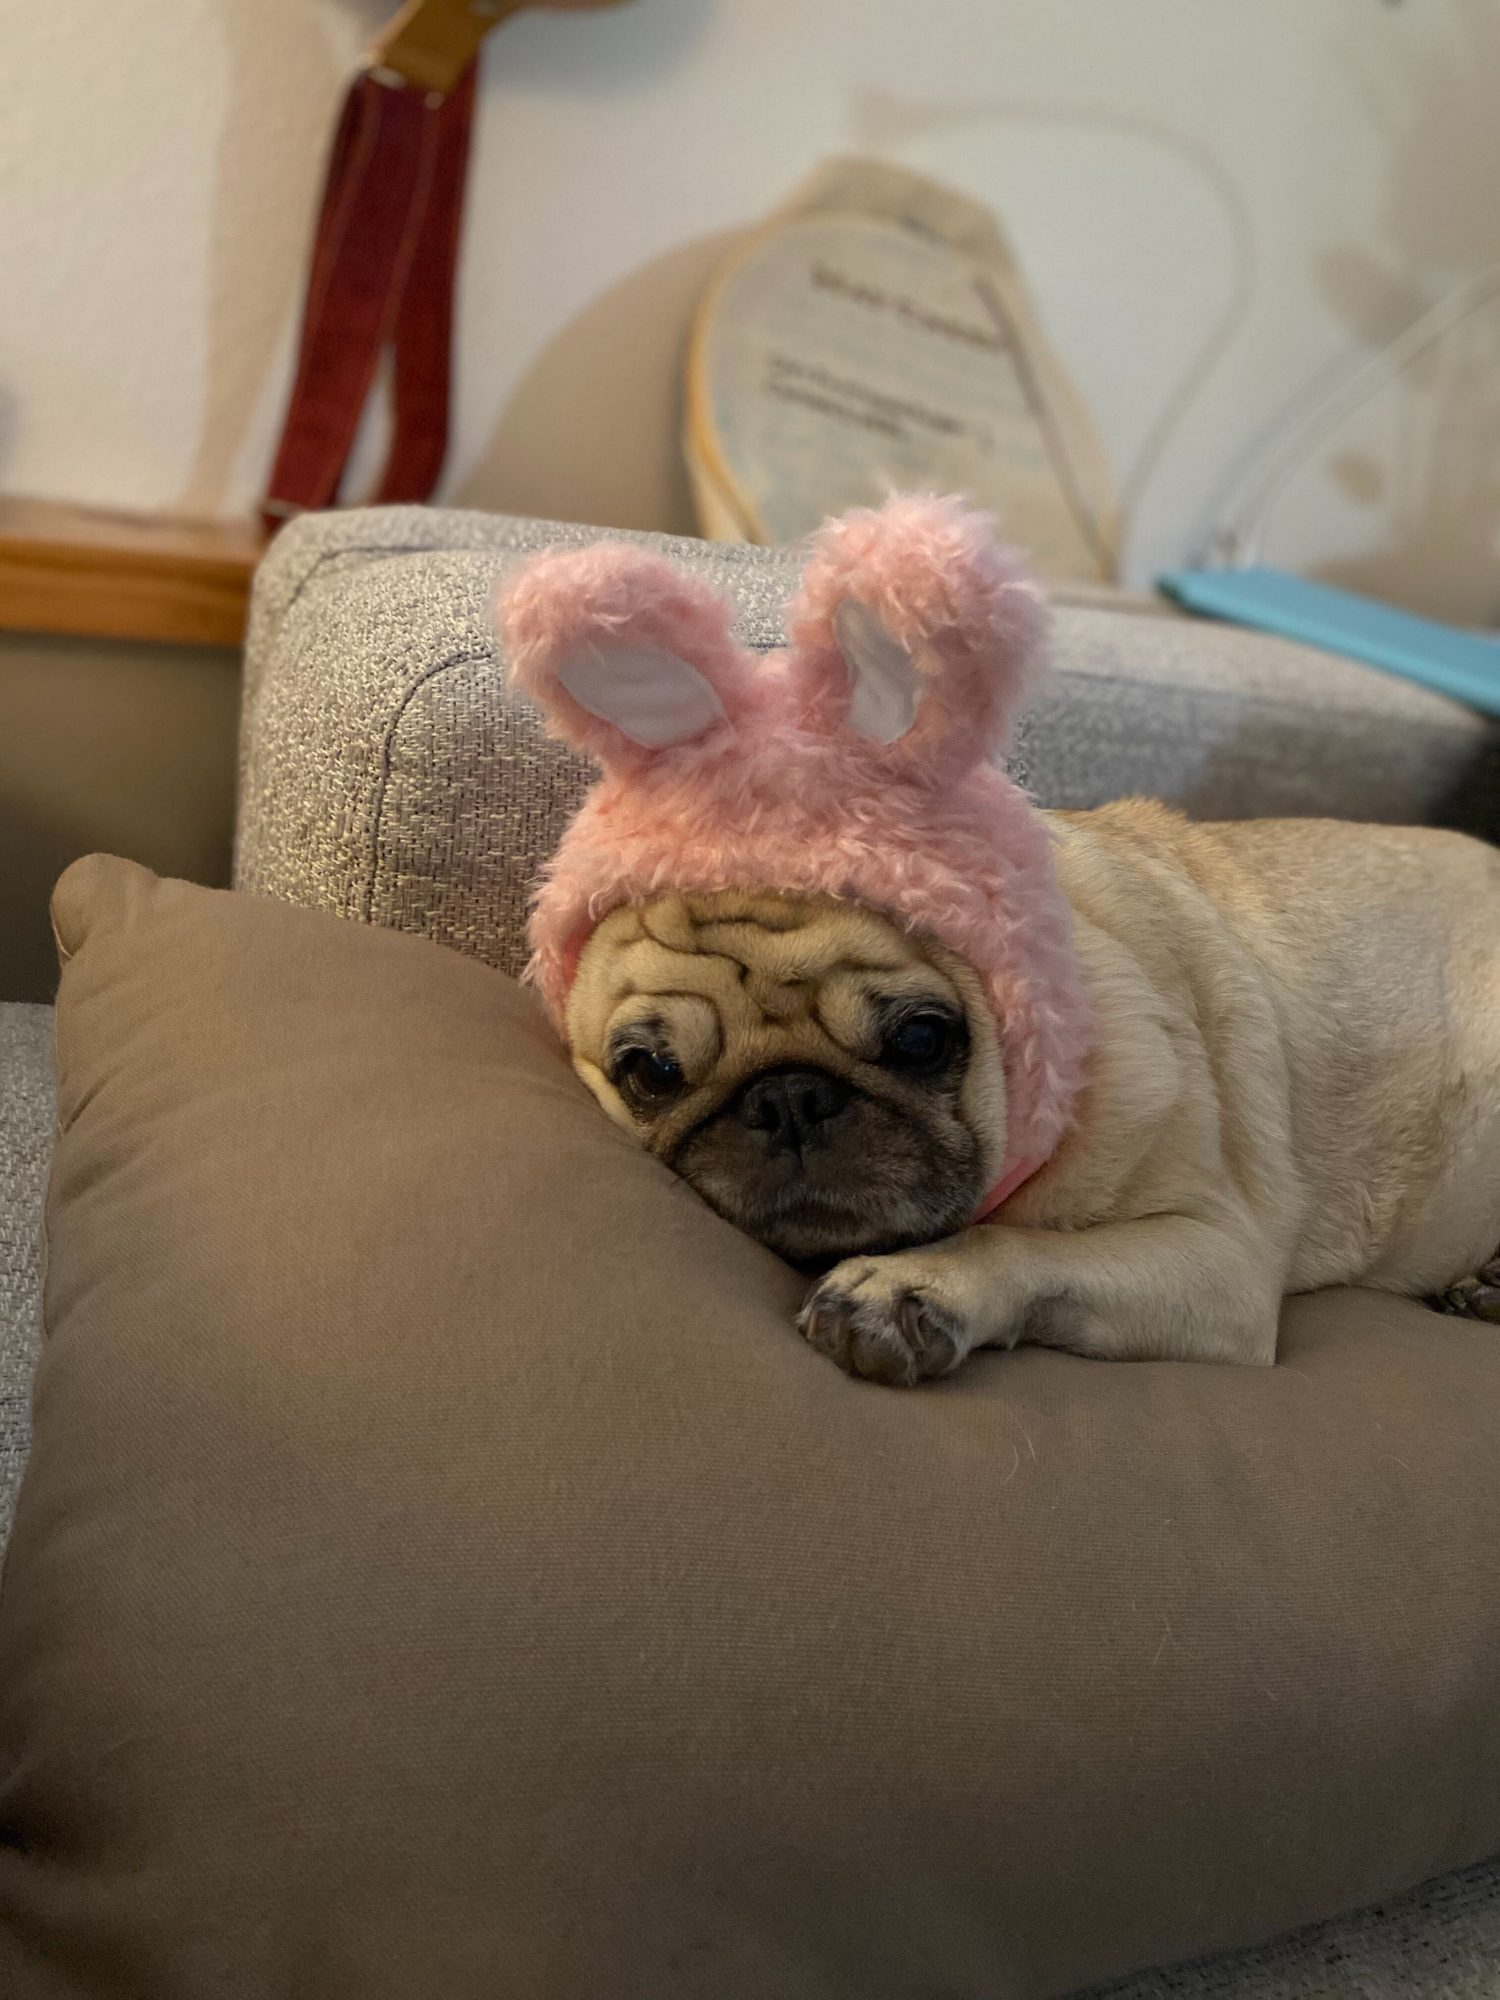 Listen, dressing up and eating tons of sugary sweets is fun until it isn't. The toothache, the sugar crash, and the inevitable exhaustion after all the trick or treaters finally leave means some of us—most of all this pug who is cleverly disguised as a bunny—are over it. Time to put away the pumpkins and get ready for Turkey Day!RELATED: Tips to Make Thanksgiving Safer for Your Pets This Holiday Season